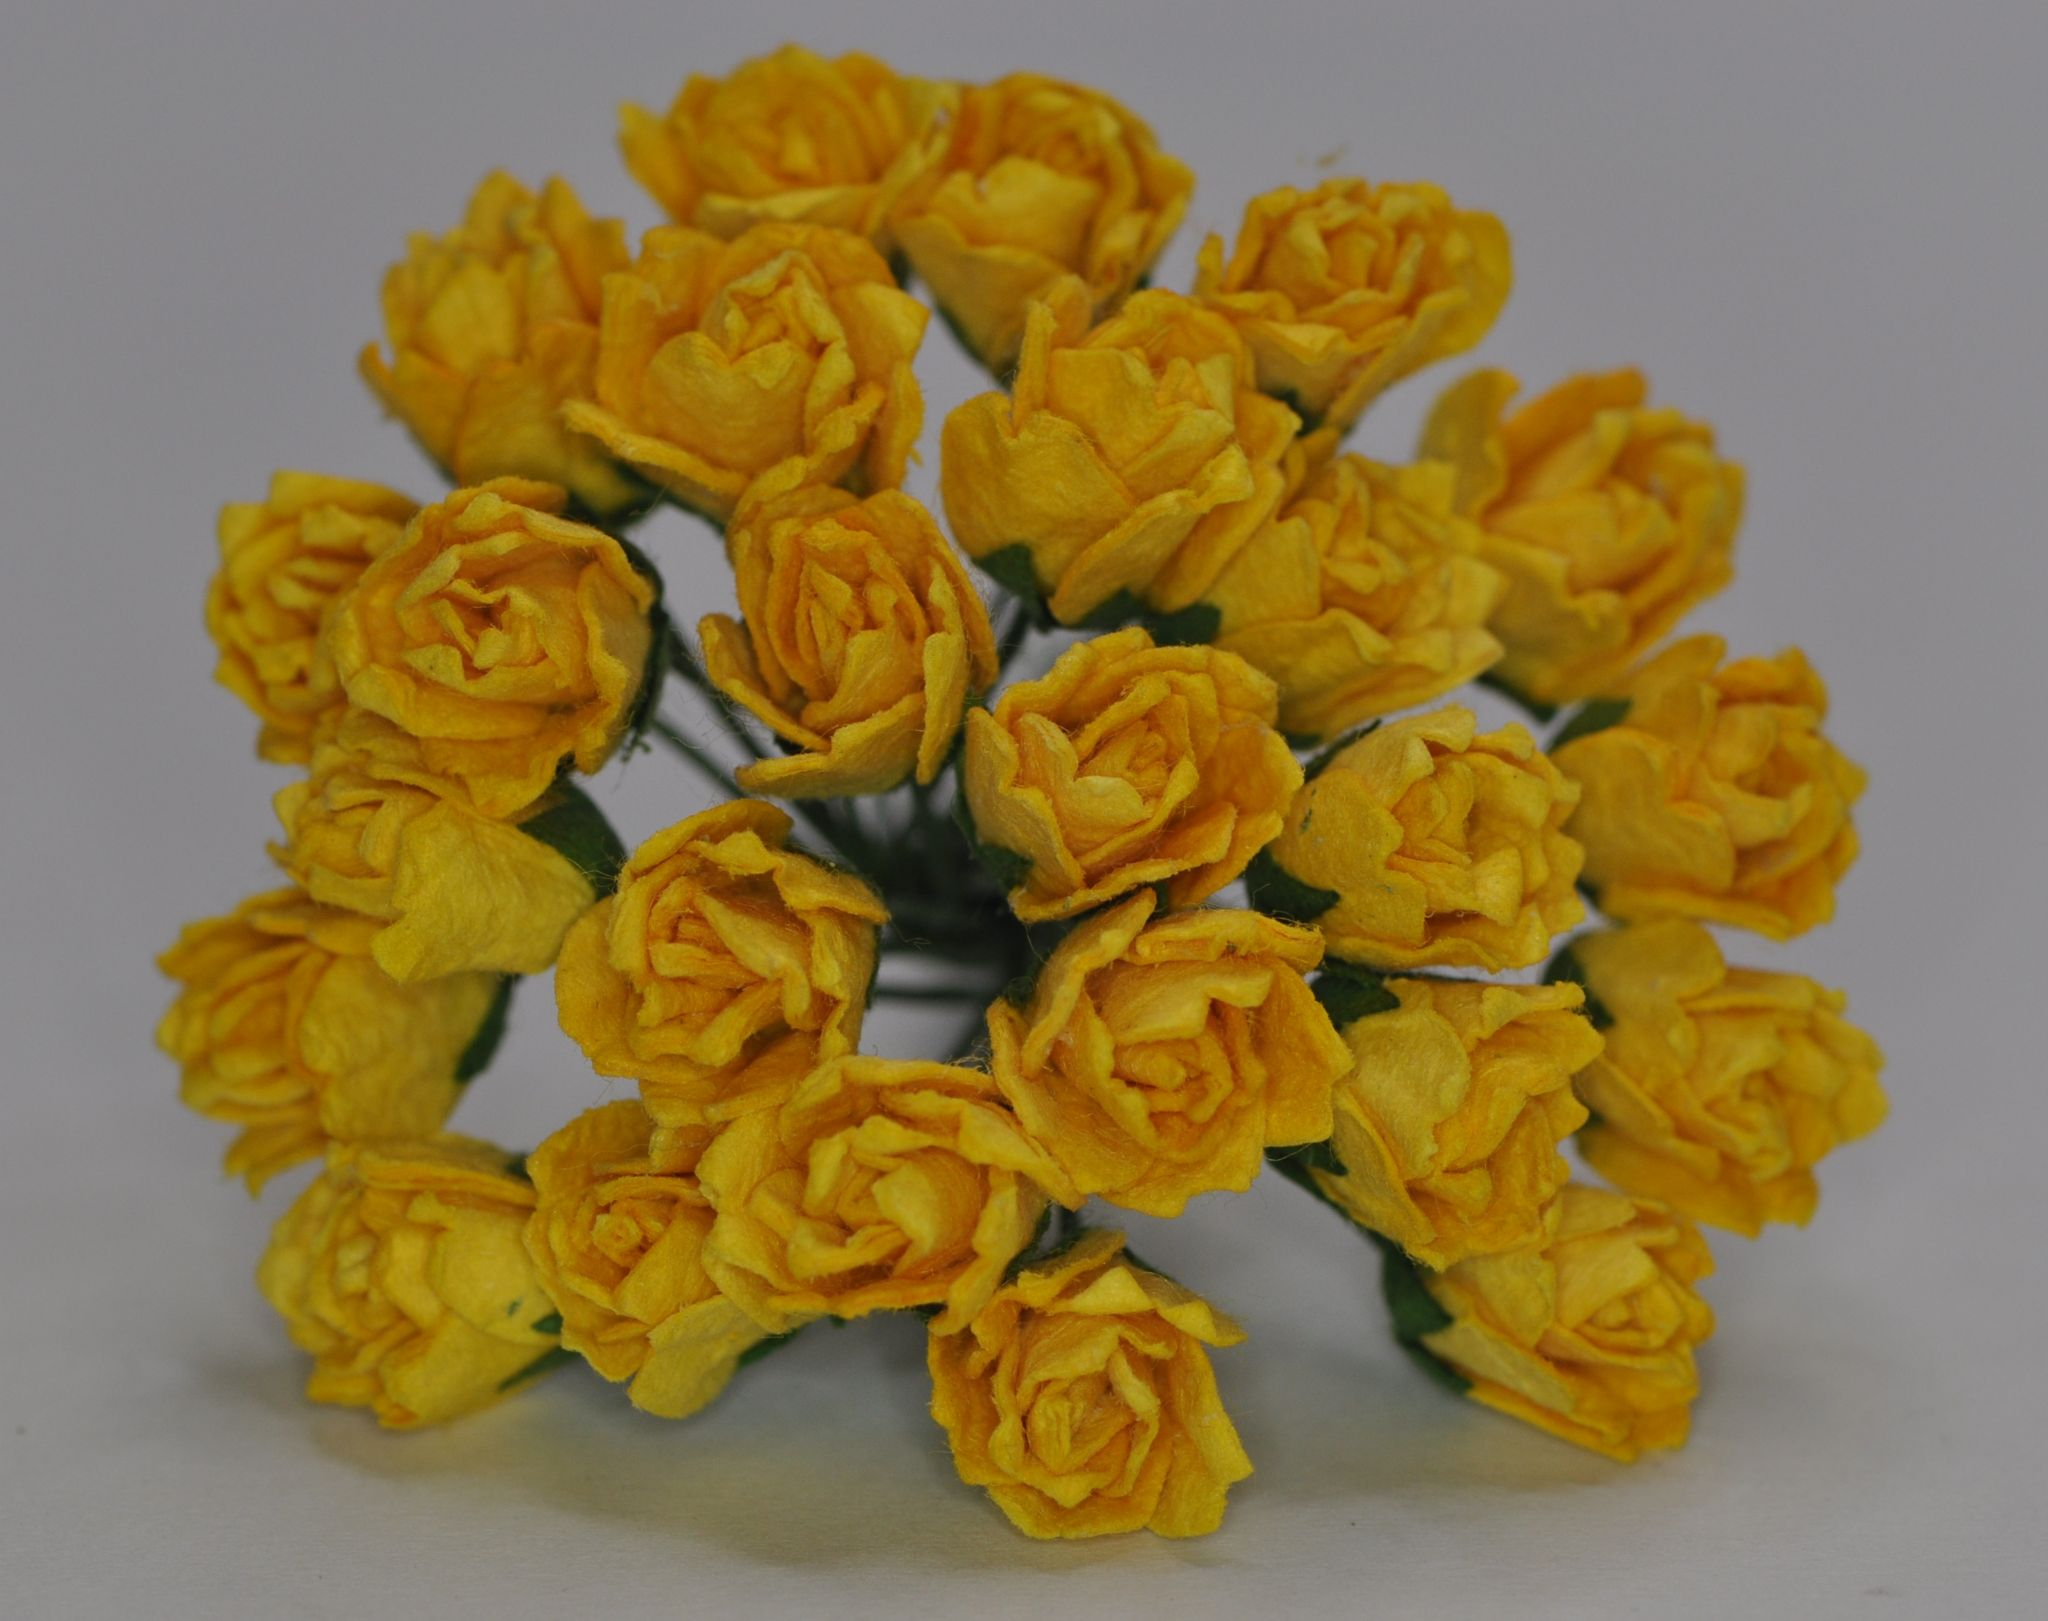 11mm Yellow Carnation Dianthus Buds Mulberry Paper Flowers